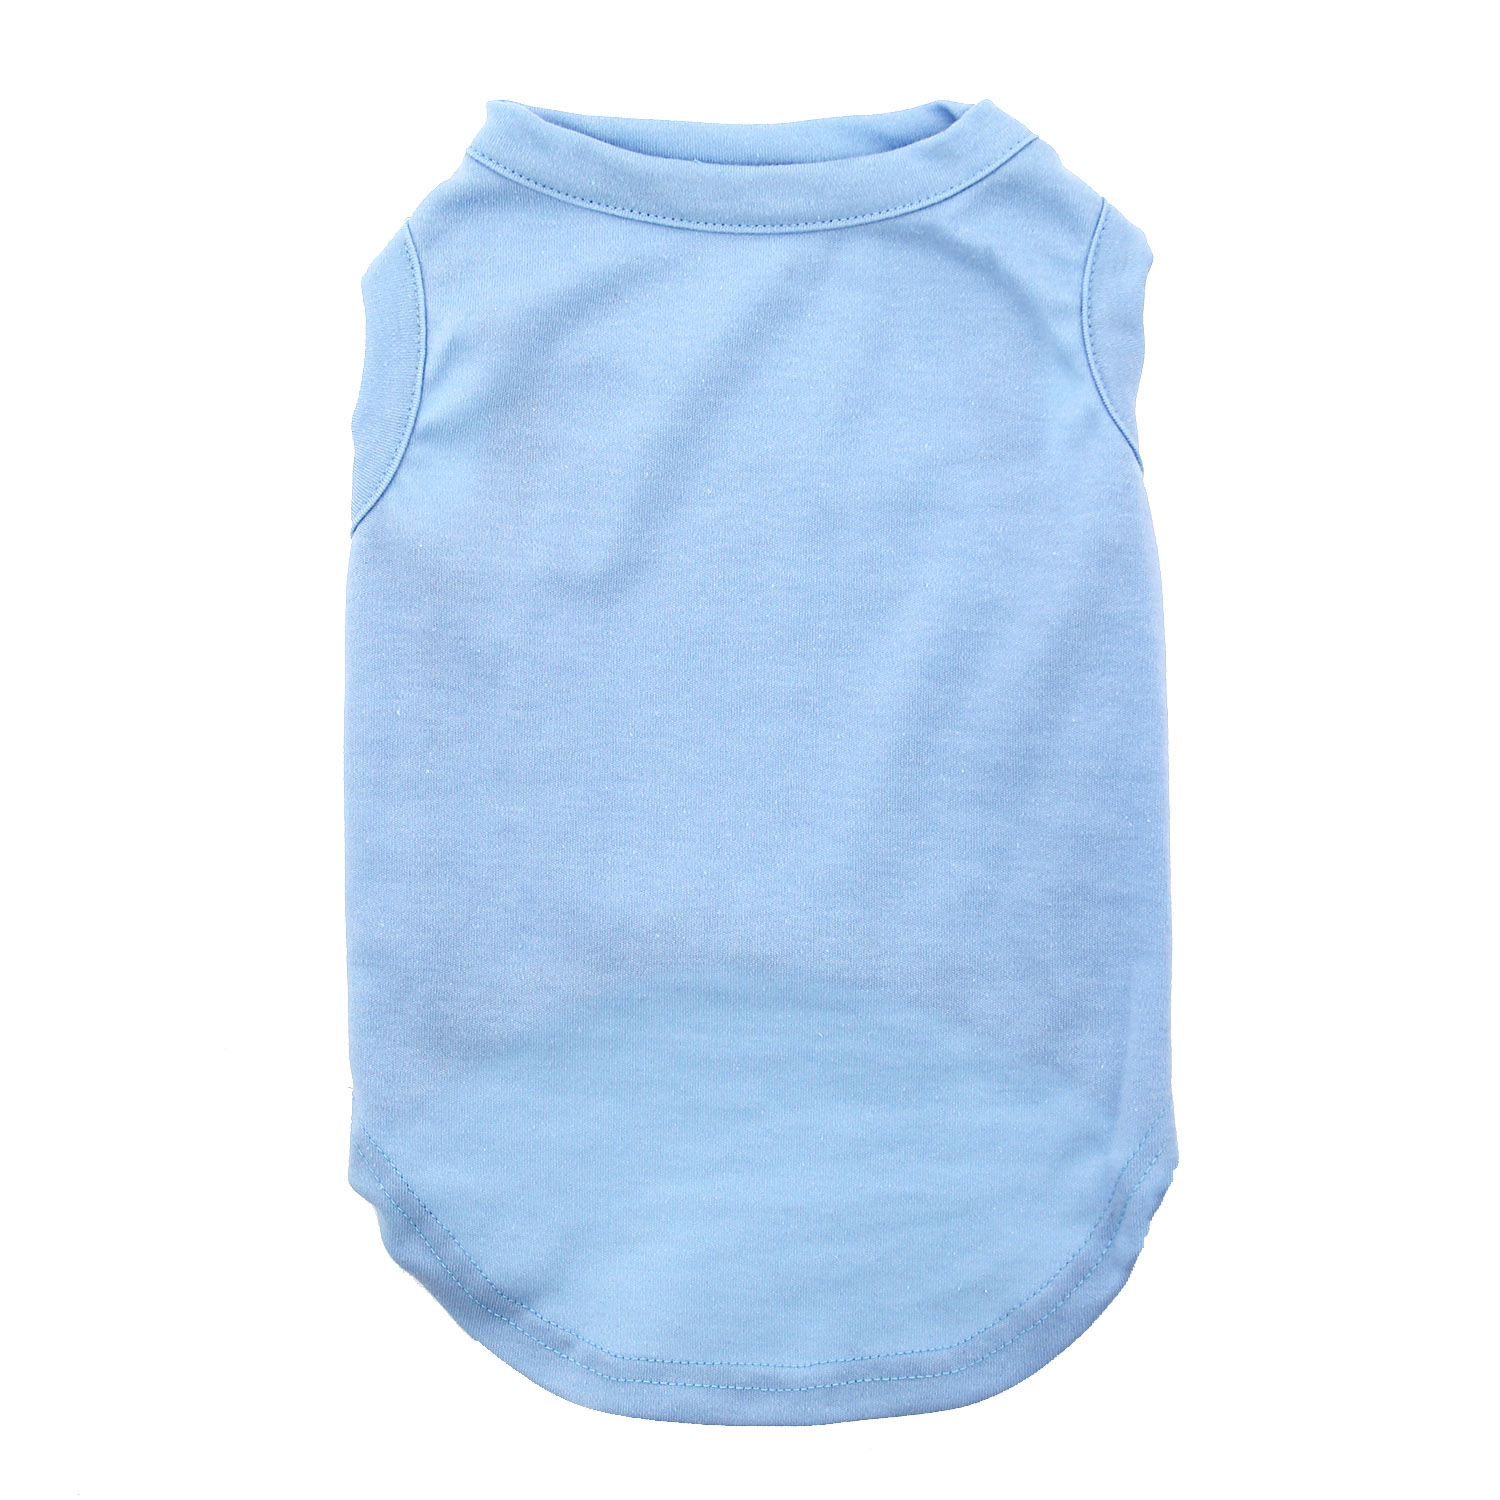 Plain Dog Shirt - Baby Blue